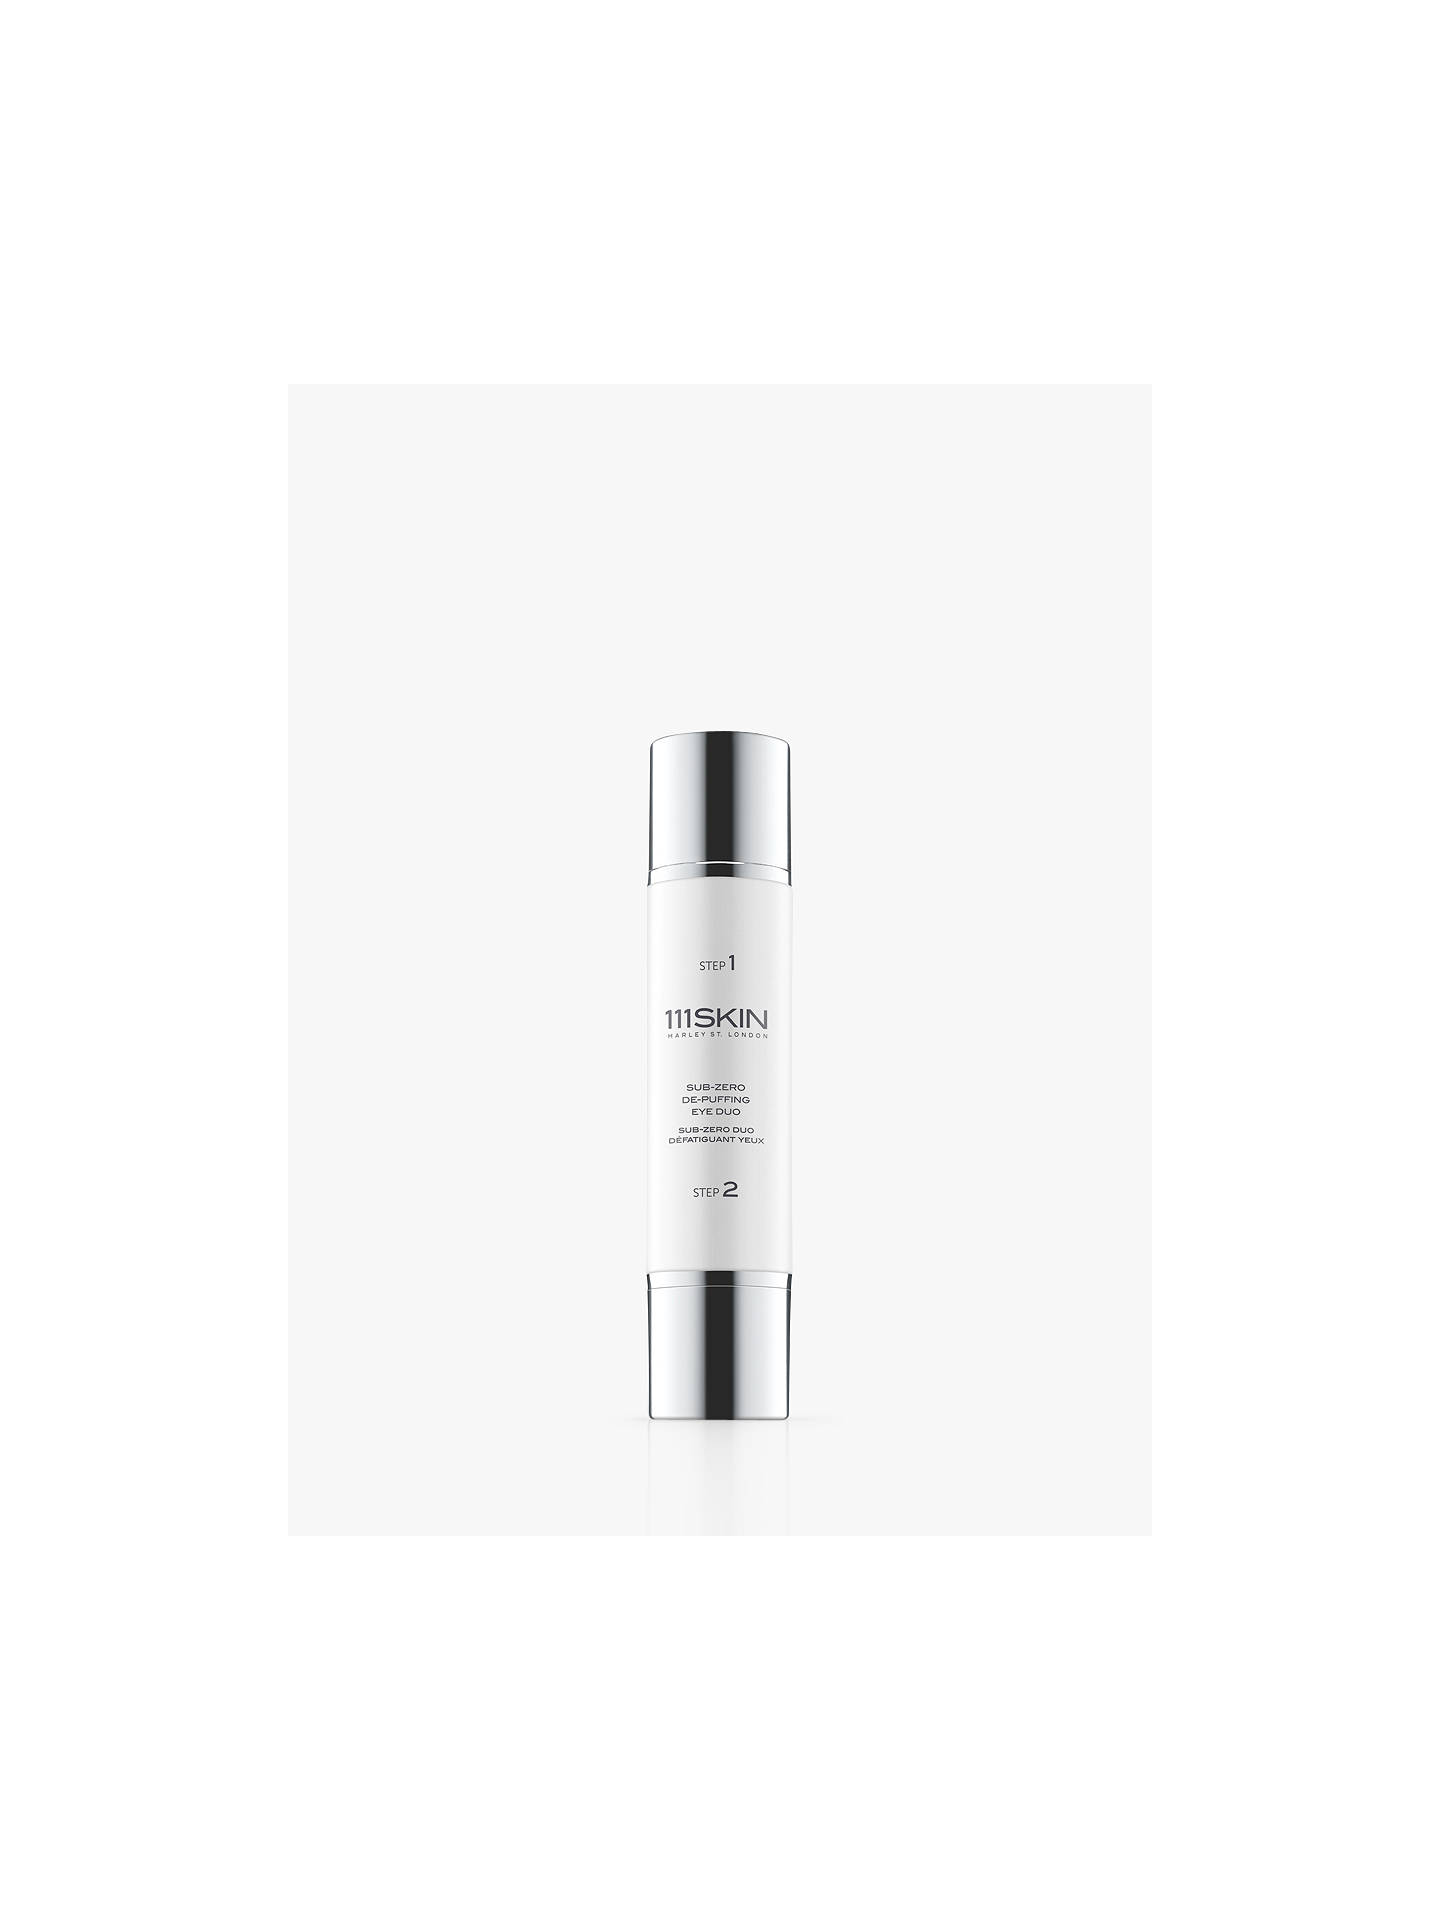 Buy 111SKIN Sub-Zero De-Puffing Eye Duo, 20ml Online at johnlewis.com